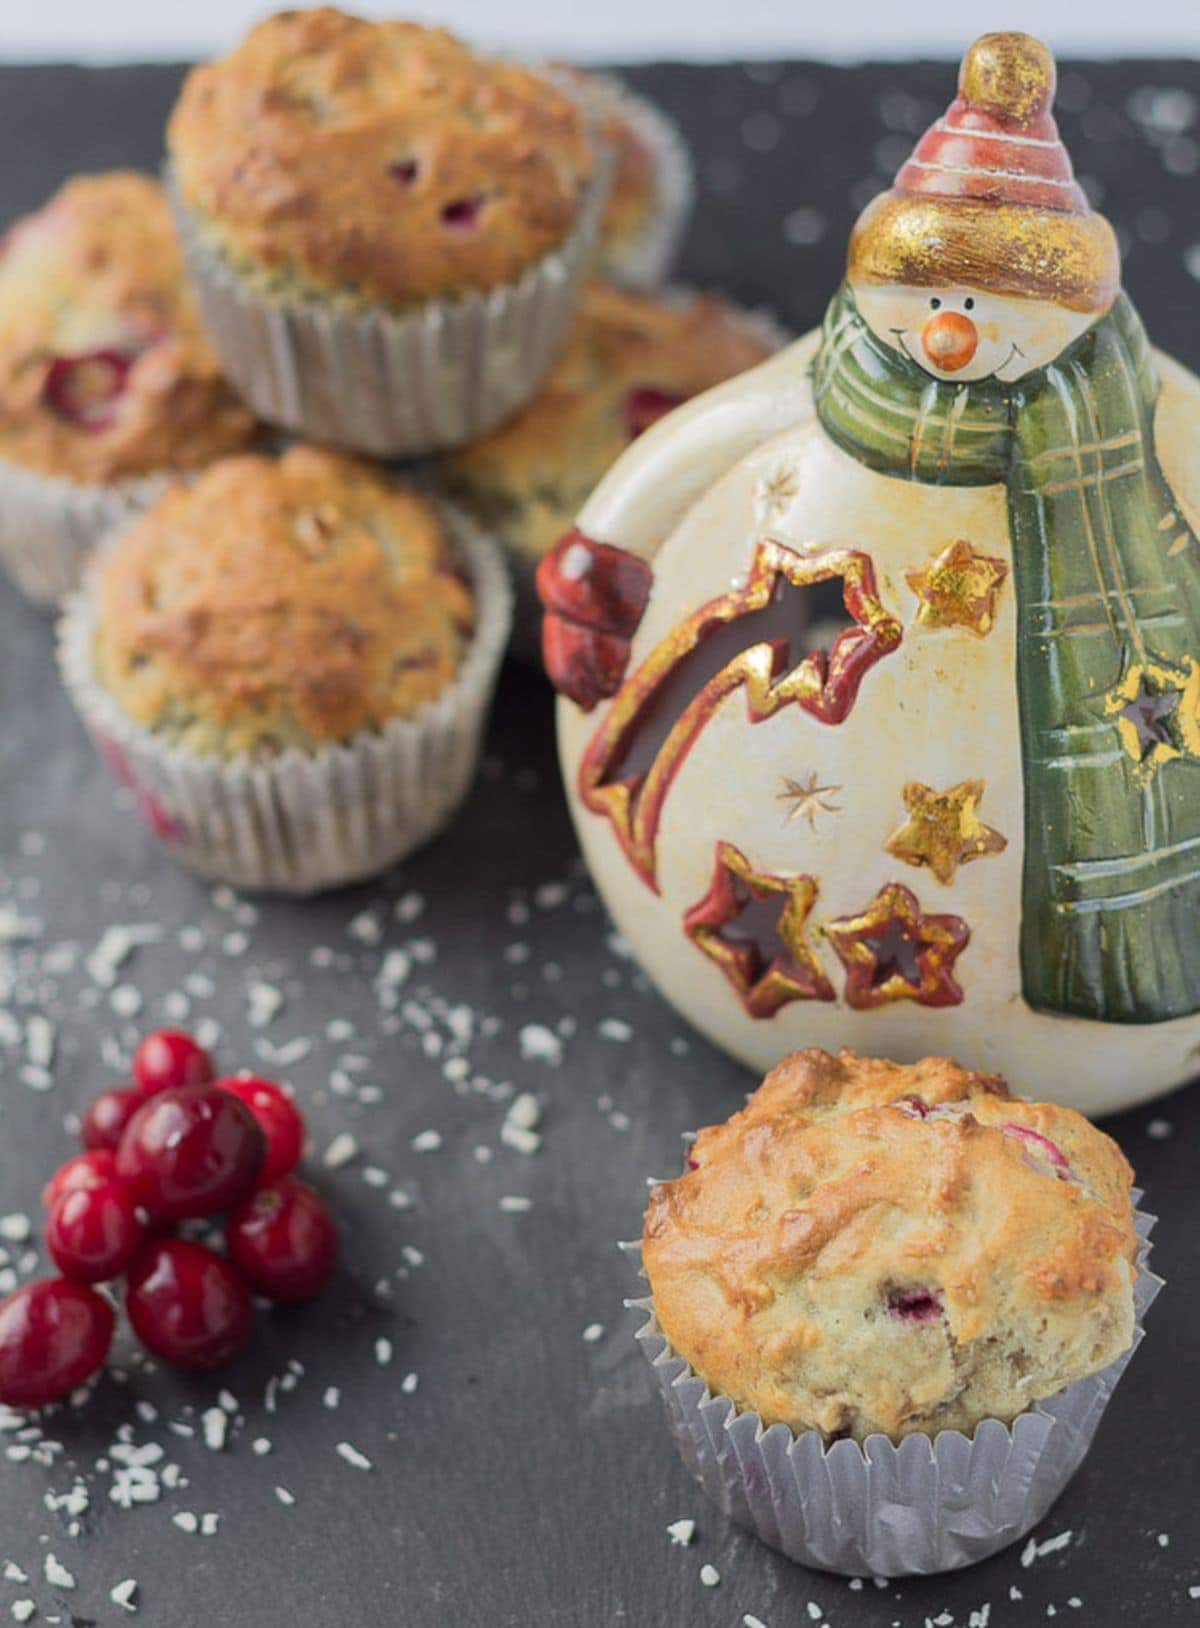 Cranberry banana muffins on a slate. One at the front a pile of cranberries to the side and a porcelian snowman with a stack of the muffins in the background.